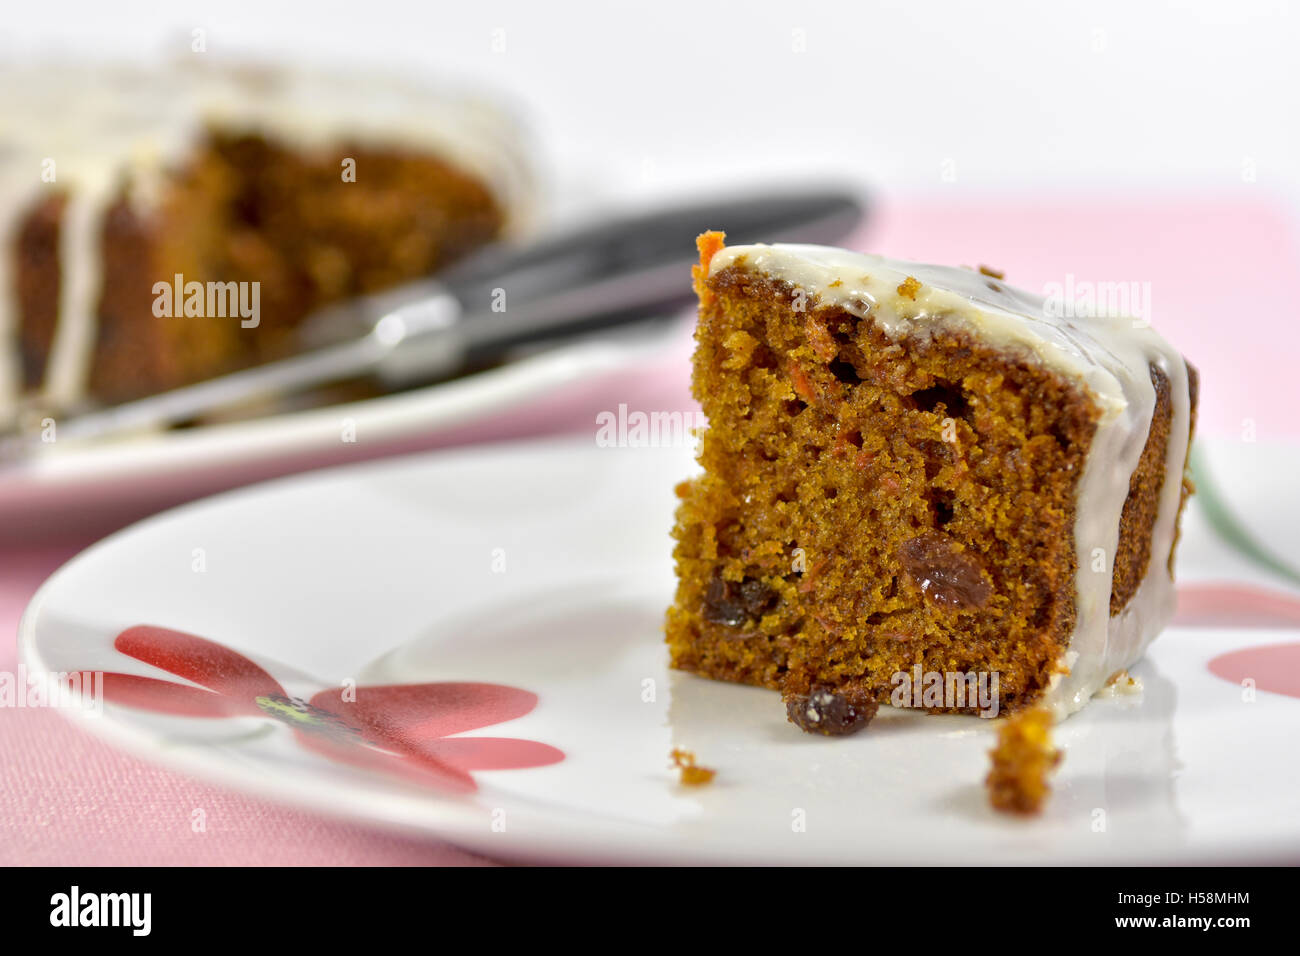 Home made carrot cake slice on plate - Stock Image